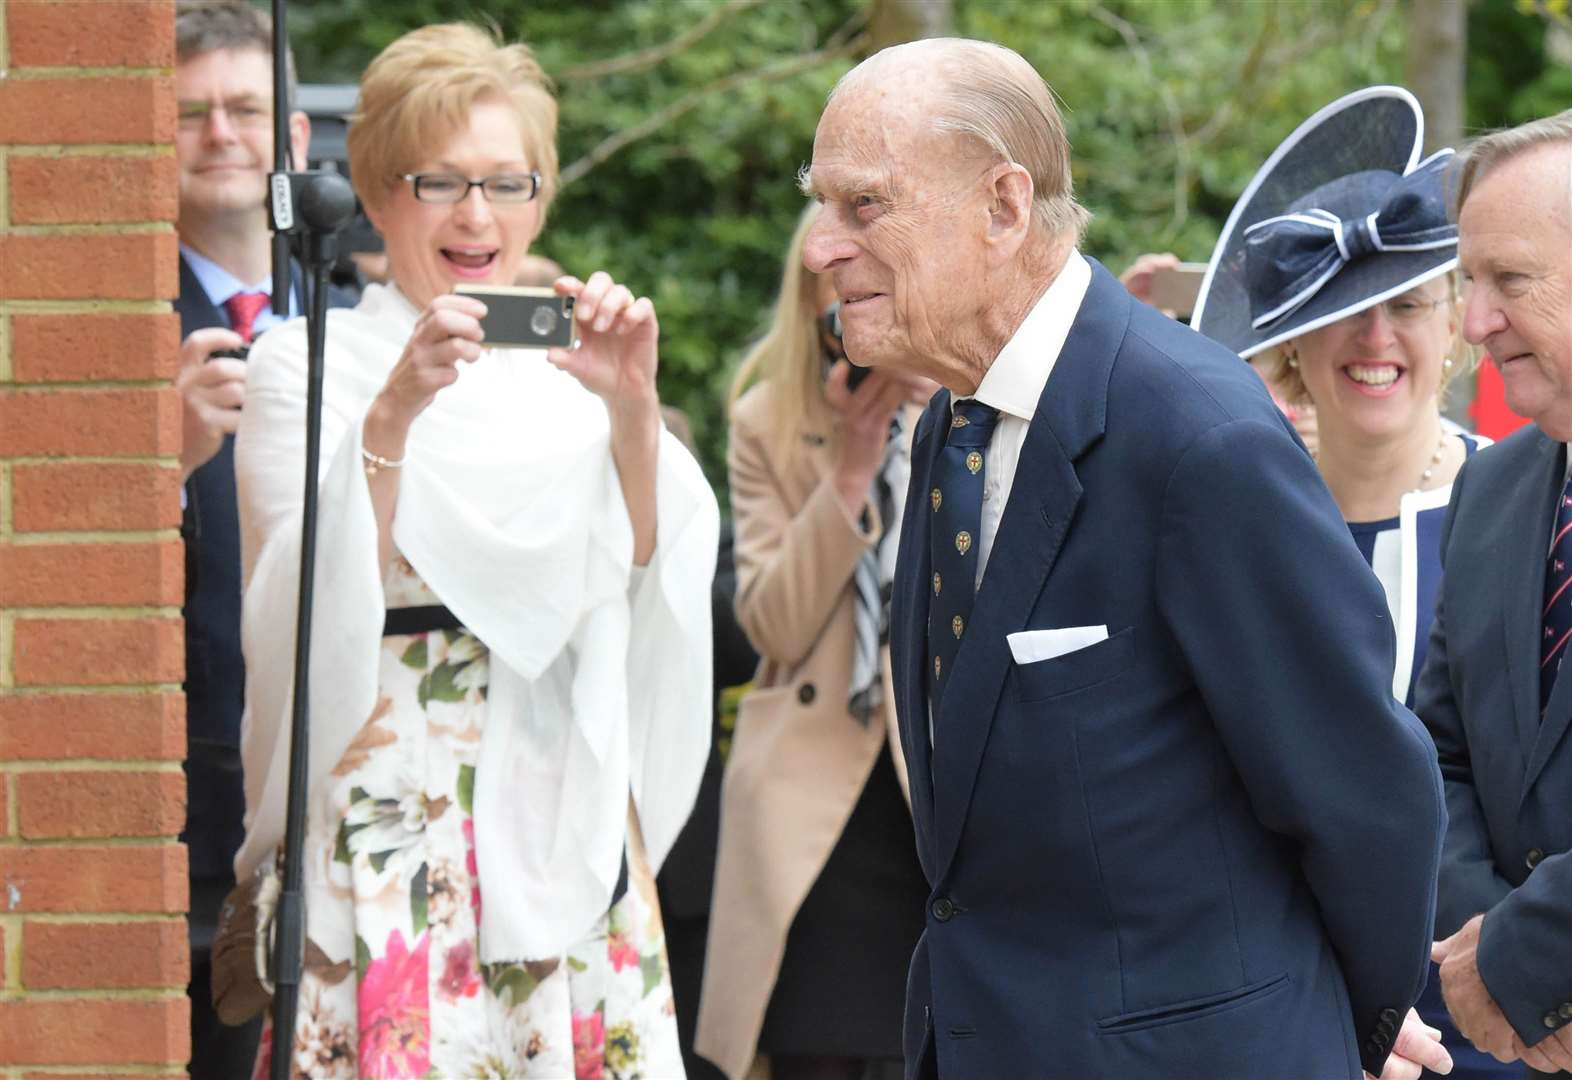 The Queen and His Royal Highness The Prince Philip, Duke of Edinburgh visiting Pangbourne College for the centenary of the college